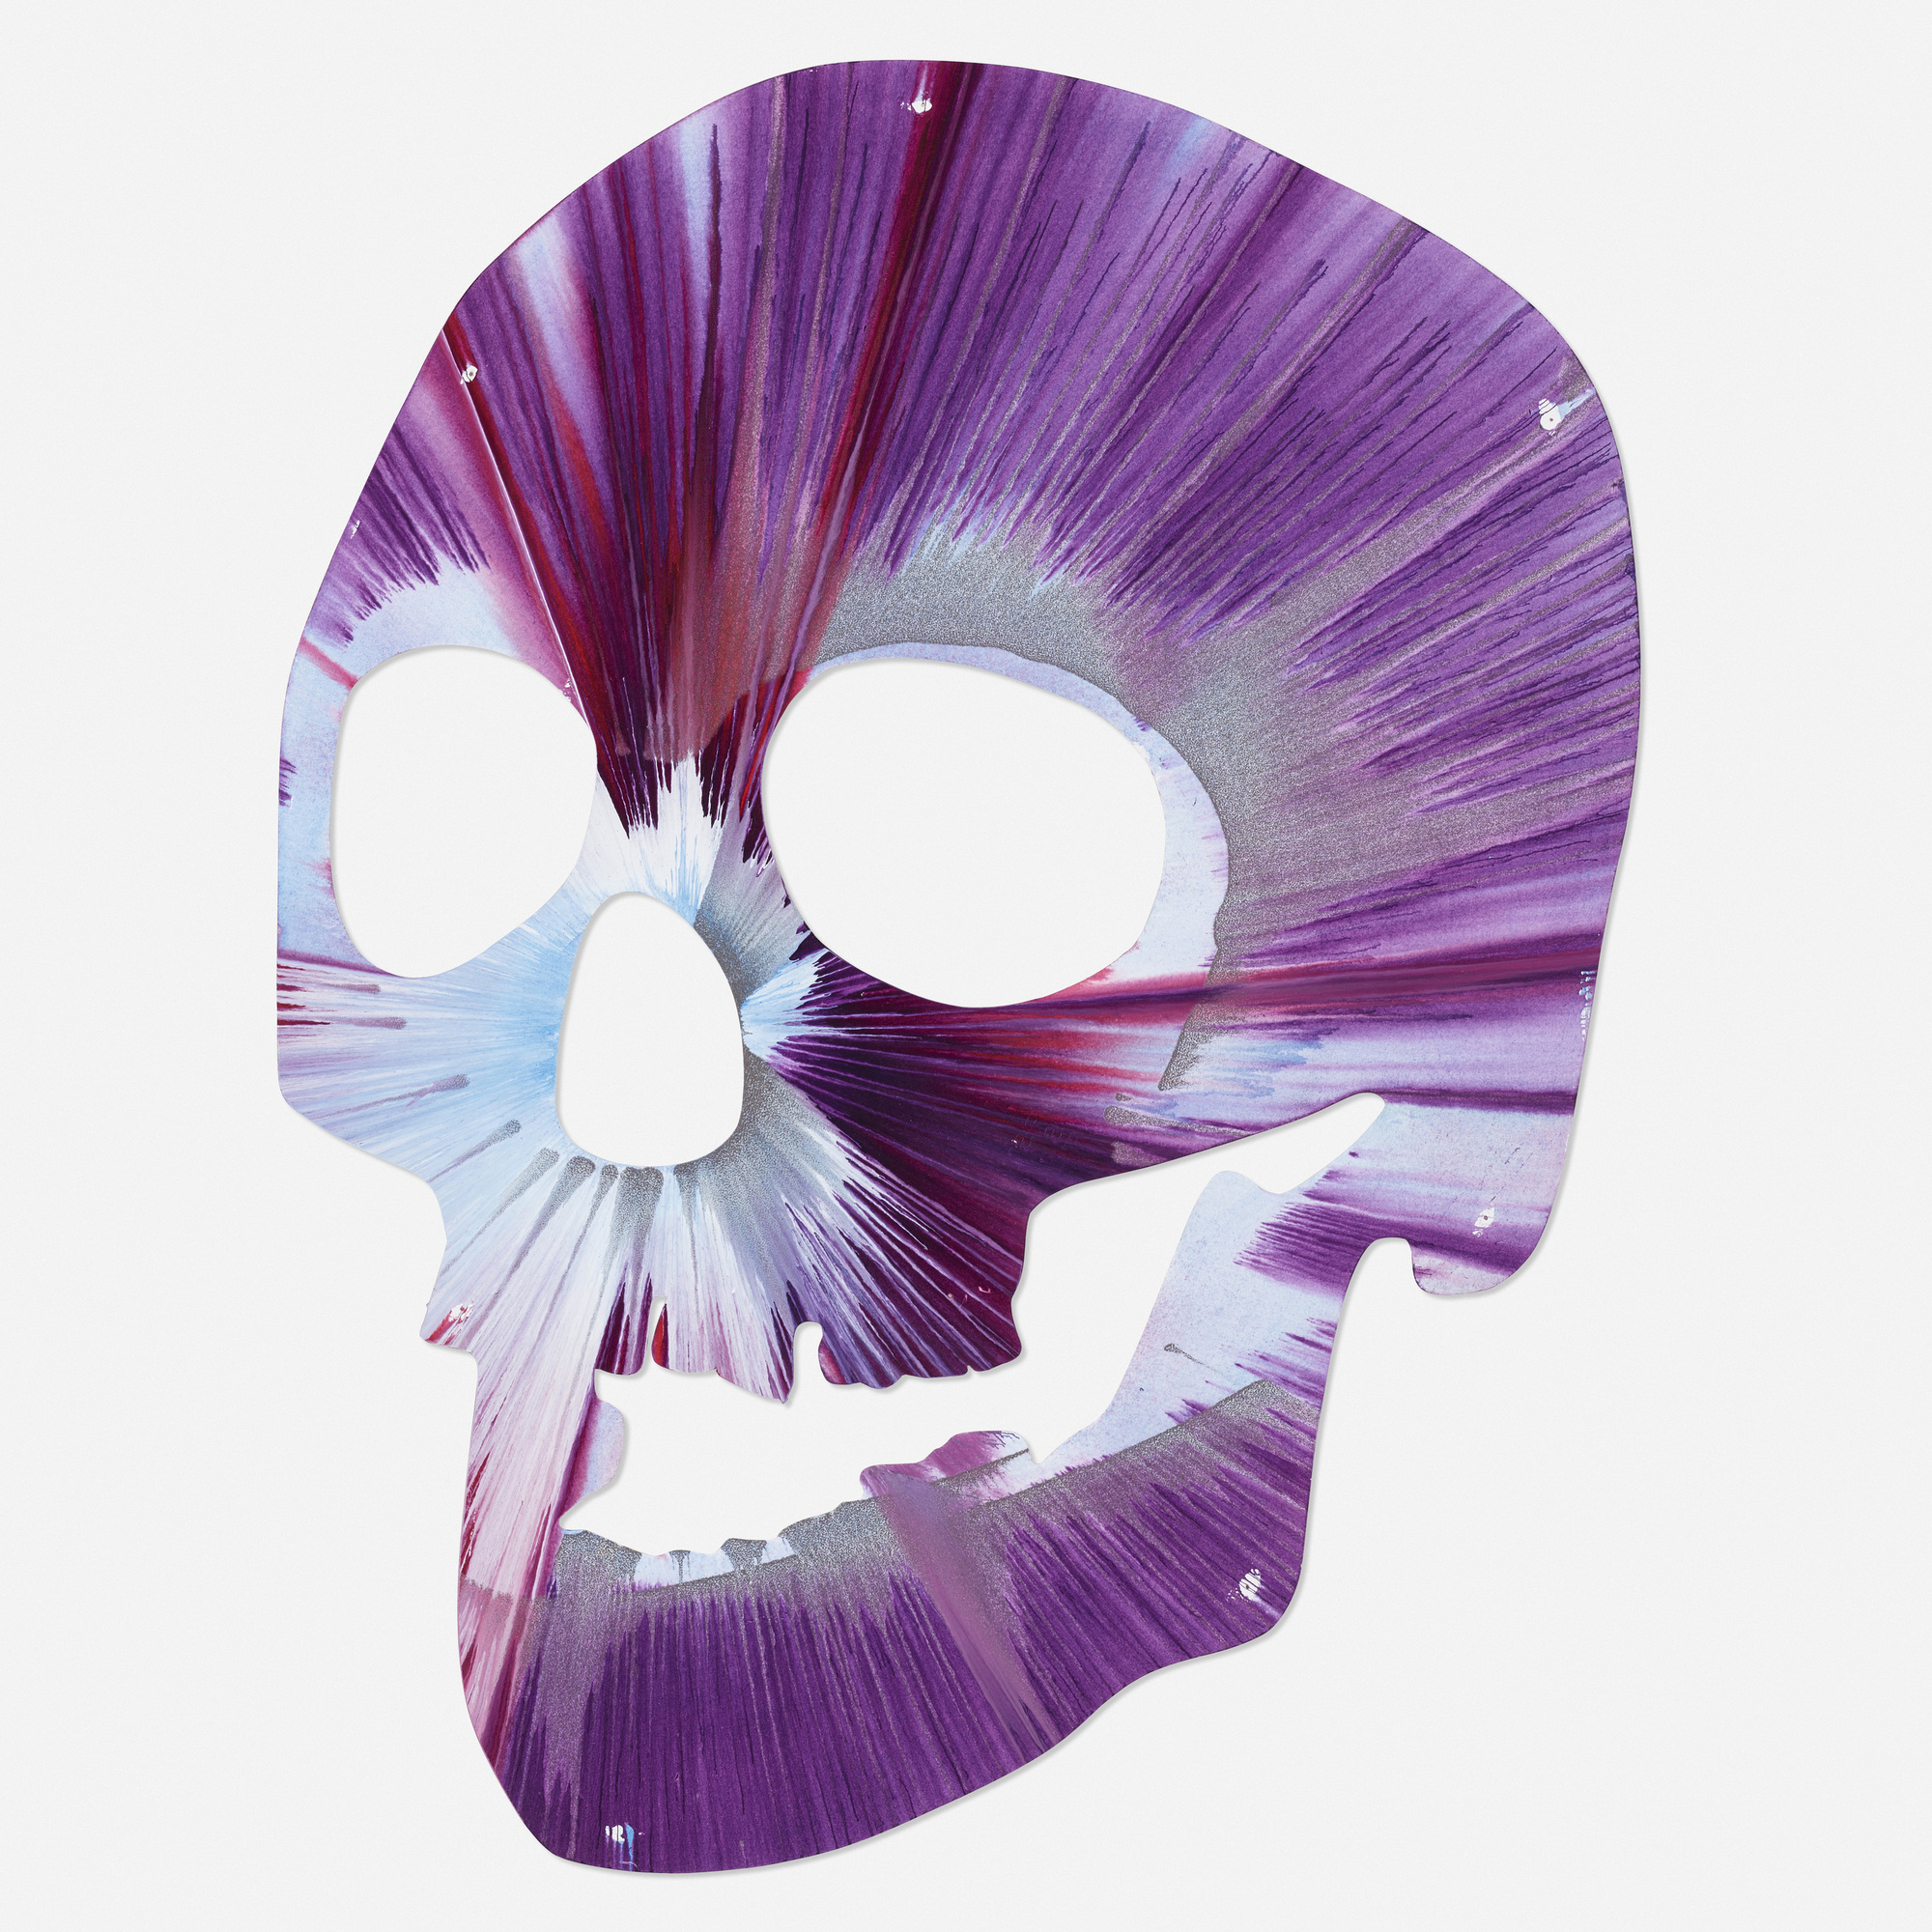 178 After Damien Hirst Skull Spin Painting Art Design 11 April 2019 Auctions Wright Auctions Of Art And Design